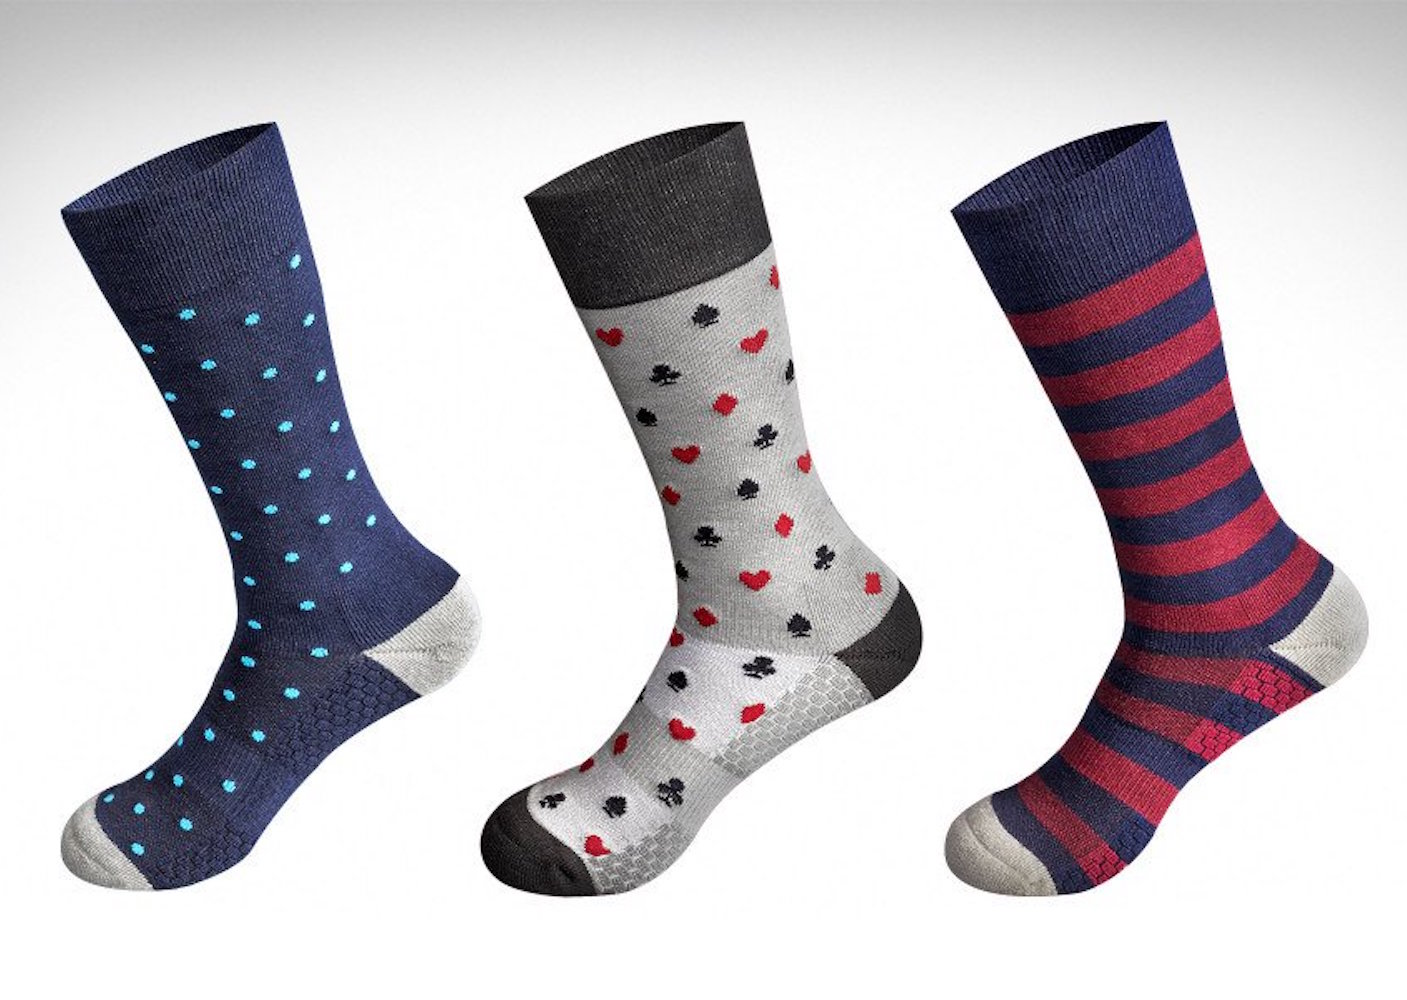 Stealth Socks by Maison Impeccable